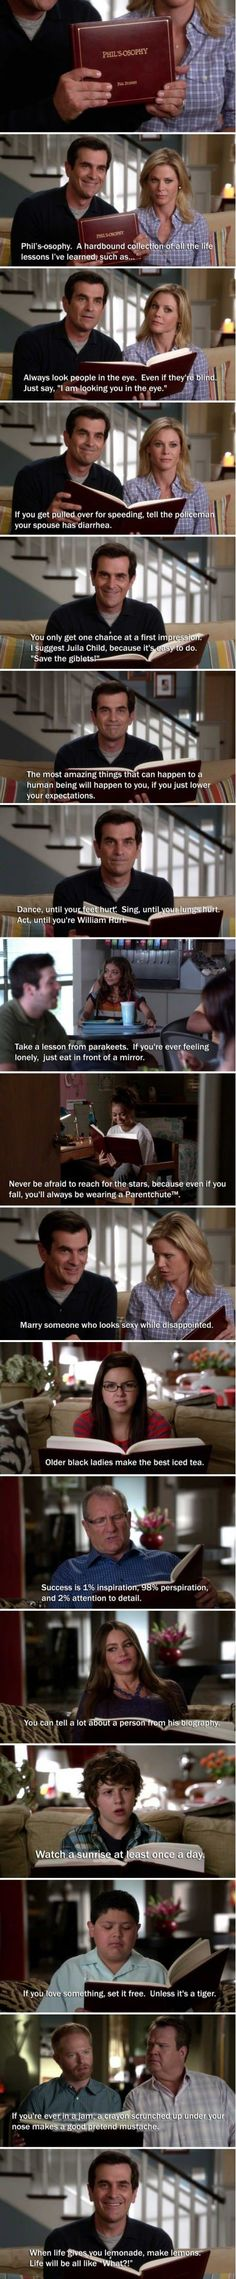 Phil's-osophy. Modern Family. Best show ever.